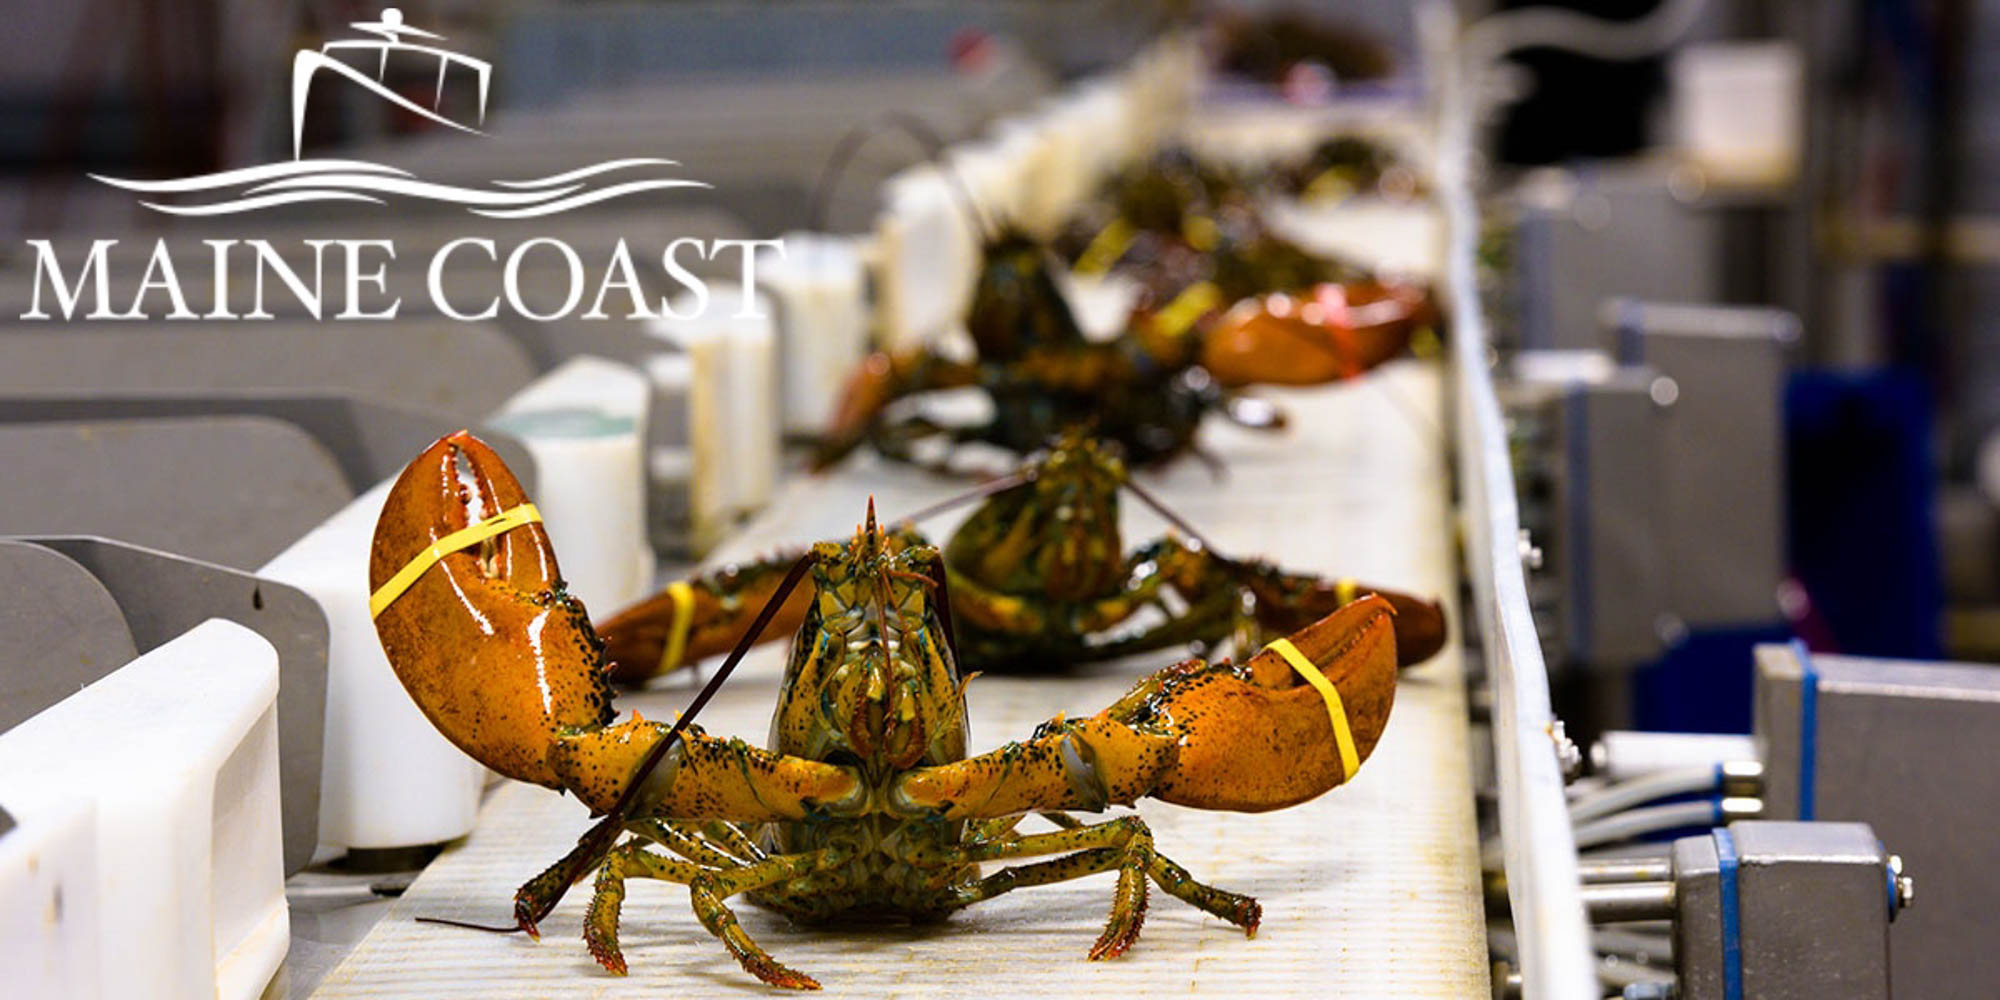 Our lobster comes from independent lobstermen throughout the coast of Maine and Atlantic Canada who follow strict guidelines to ensure the quality and sustainability of this natural resource. The Maine and Canadian lobster fisheries operate with complementary seasons, providing Maine Coast with a steady year-round supply of the finest hard shell and new shell lobster in the world.